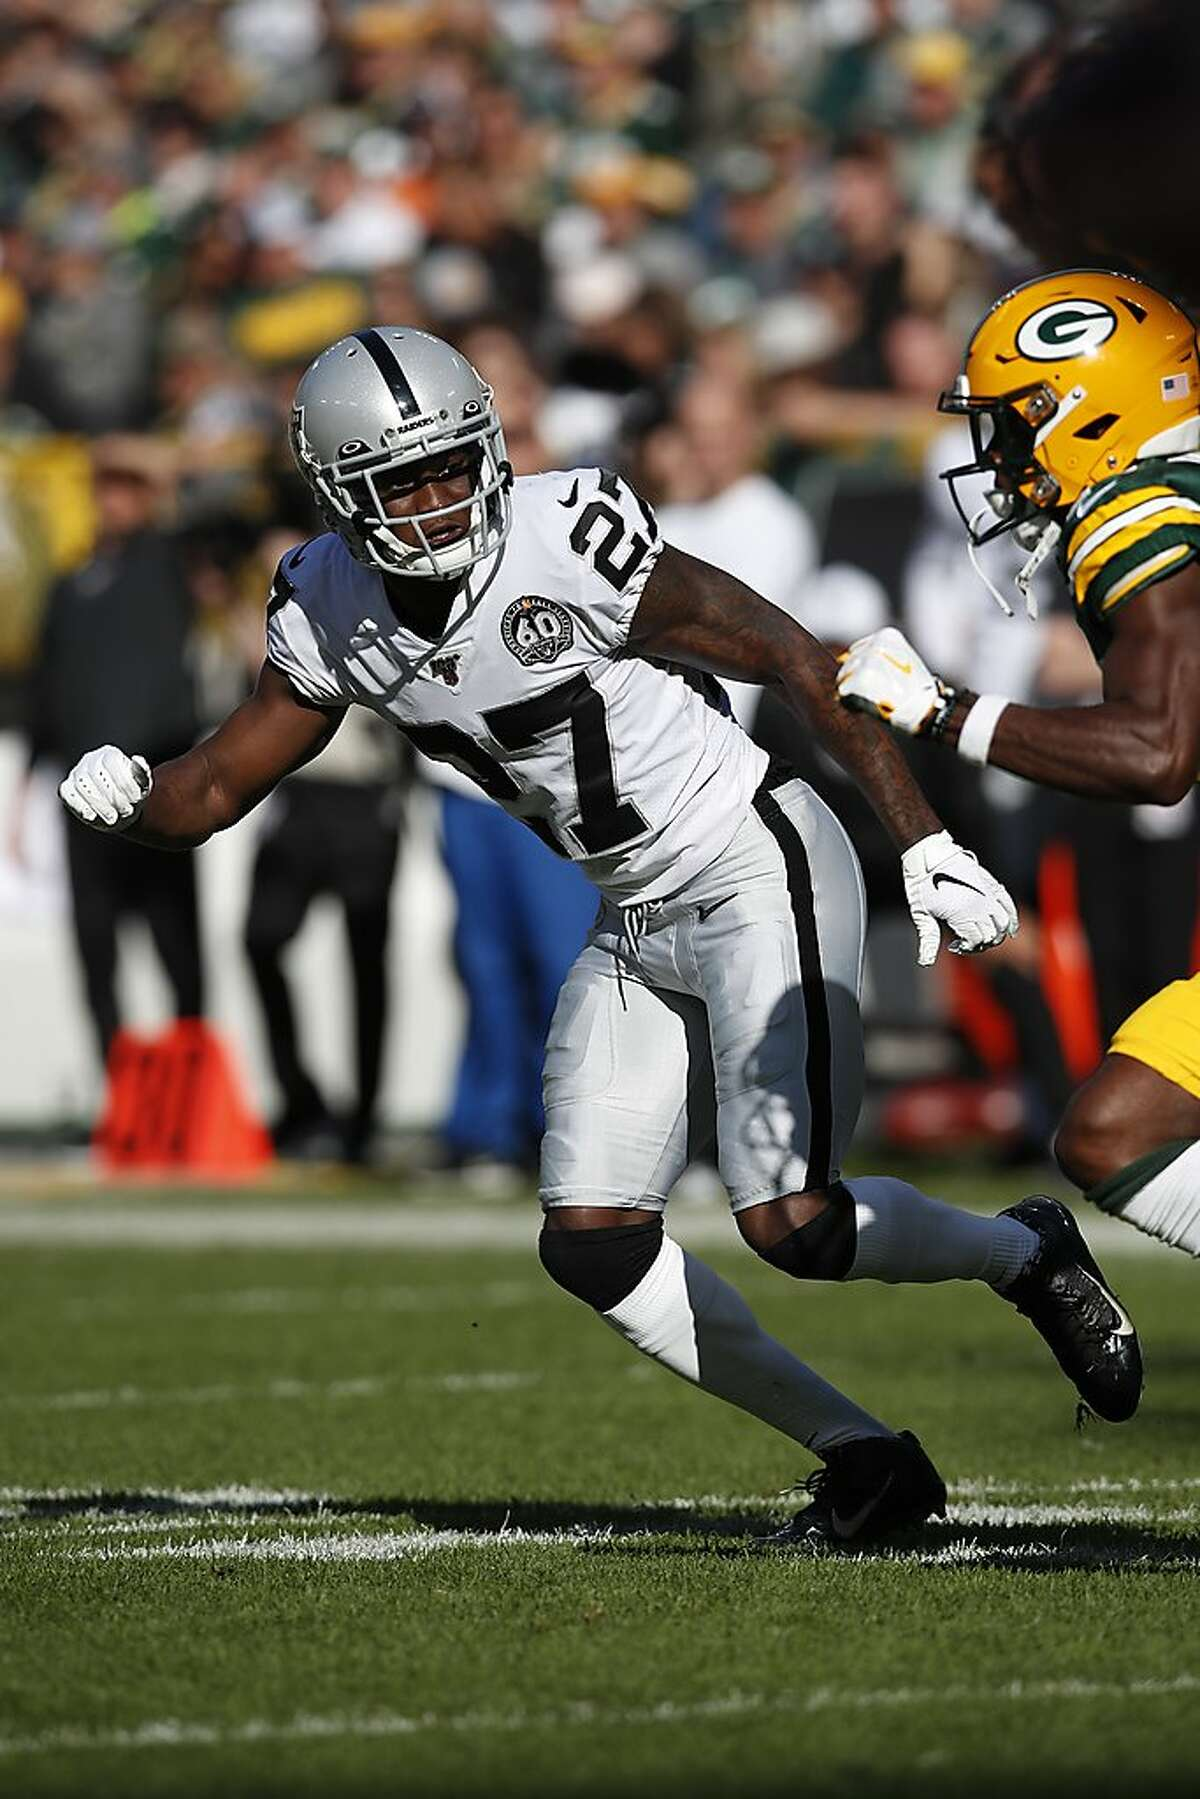 Oakland Raiders cornerback Trayvon Mullen (27) defends against the Green Bay Packers during an NFL football game Sunday, Oct. 20, 2019, in Green Bay, Wis. The Packers won the game 42-24. (Jeff Haynes/AP Images for Panini)